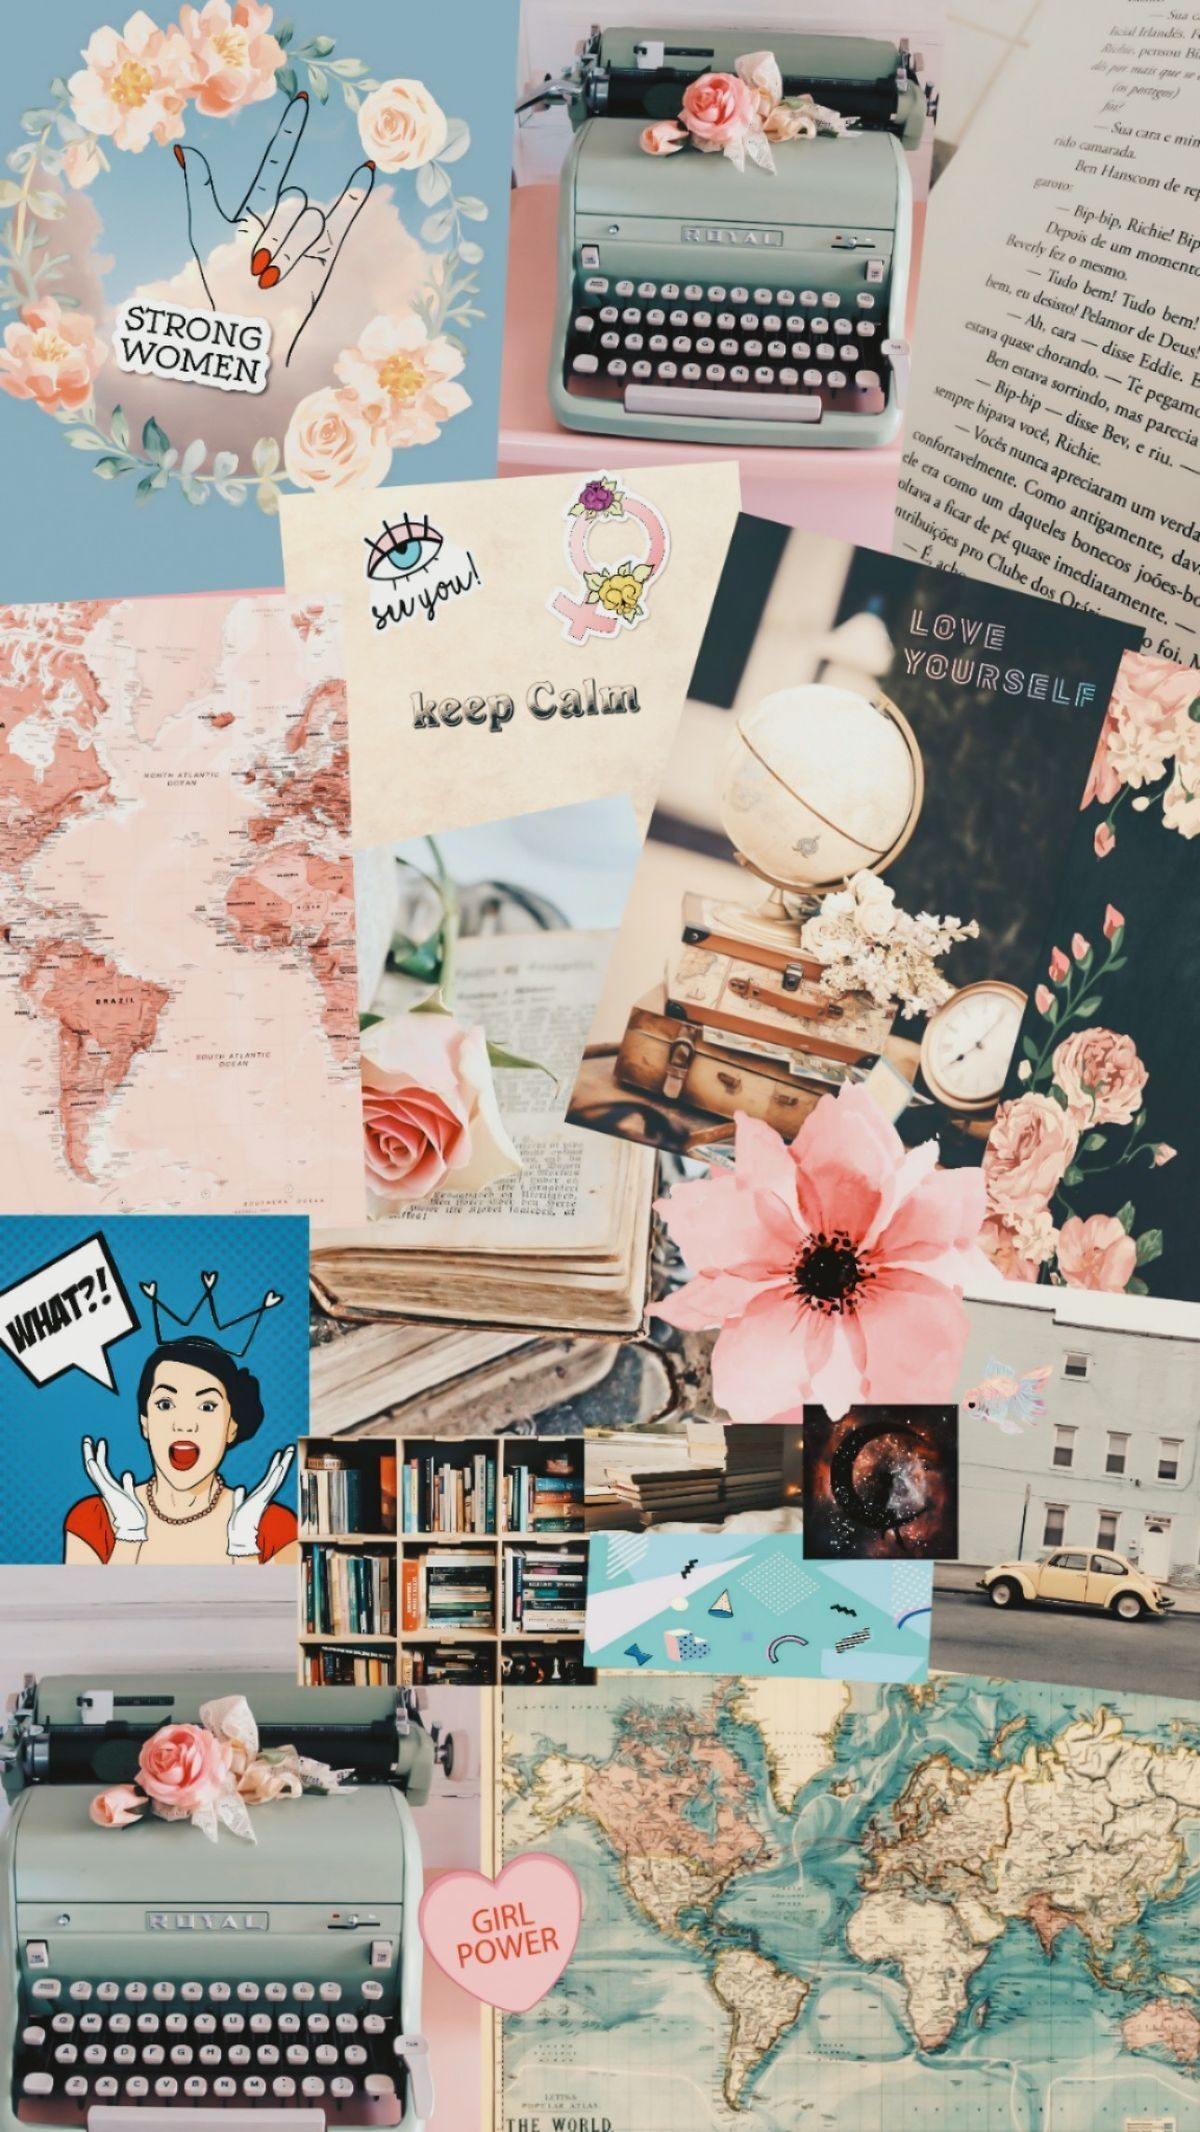 Typewriter Girly Vintage Collage Wallpaper Aesthetic Pastel